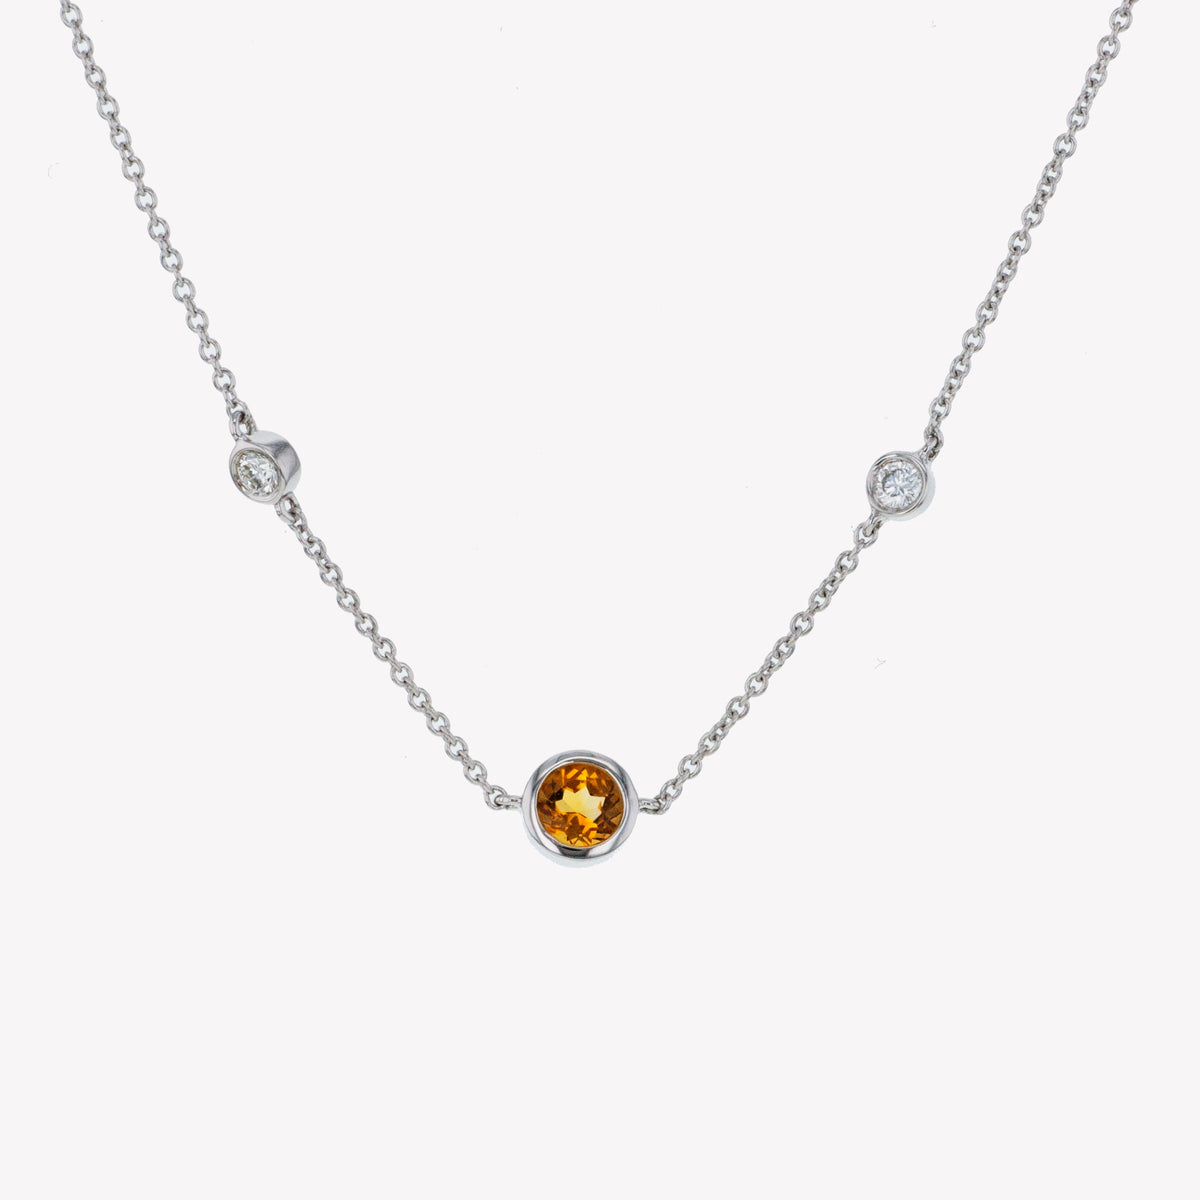 18K W/G Yellow Citrine Diamond Pendant With Chain